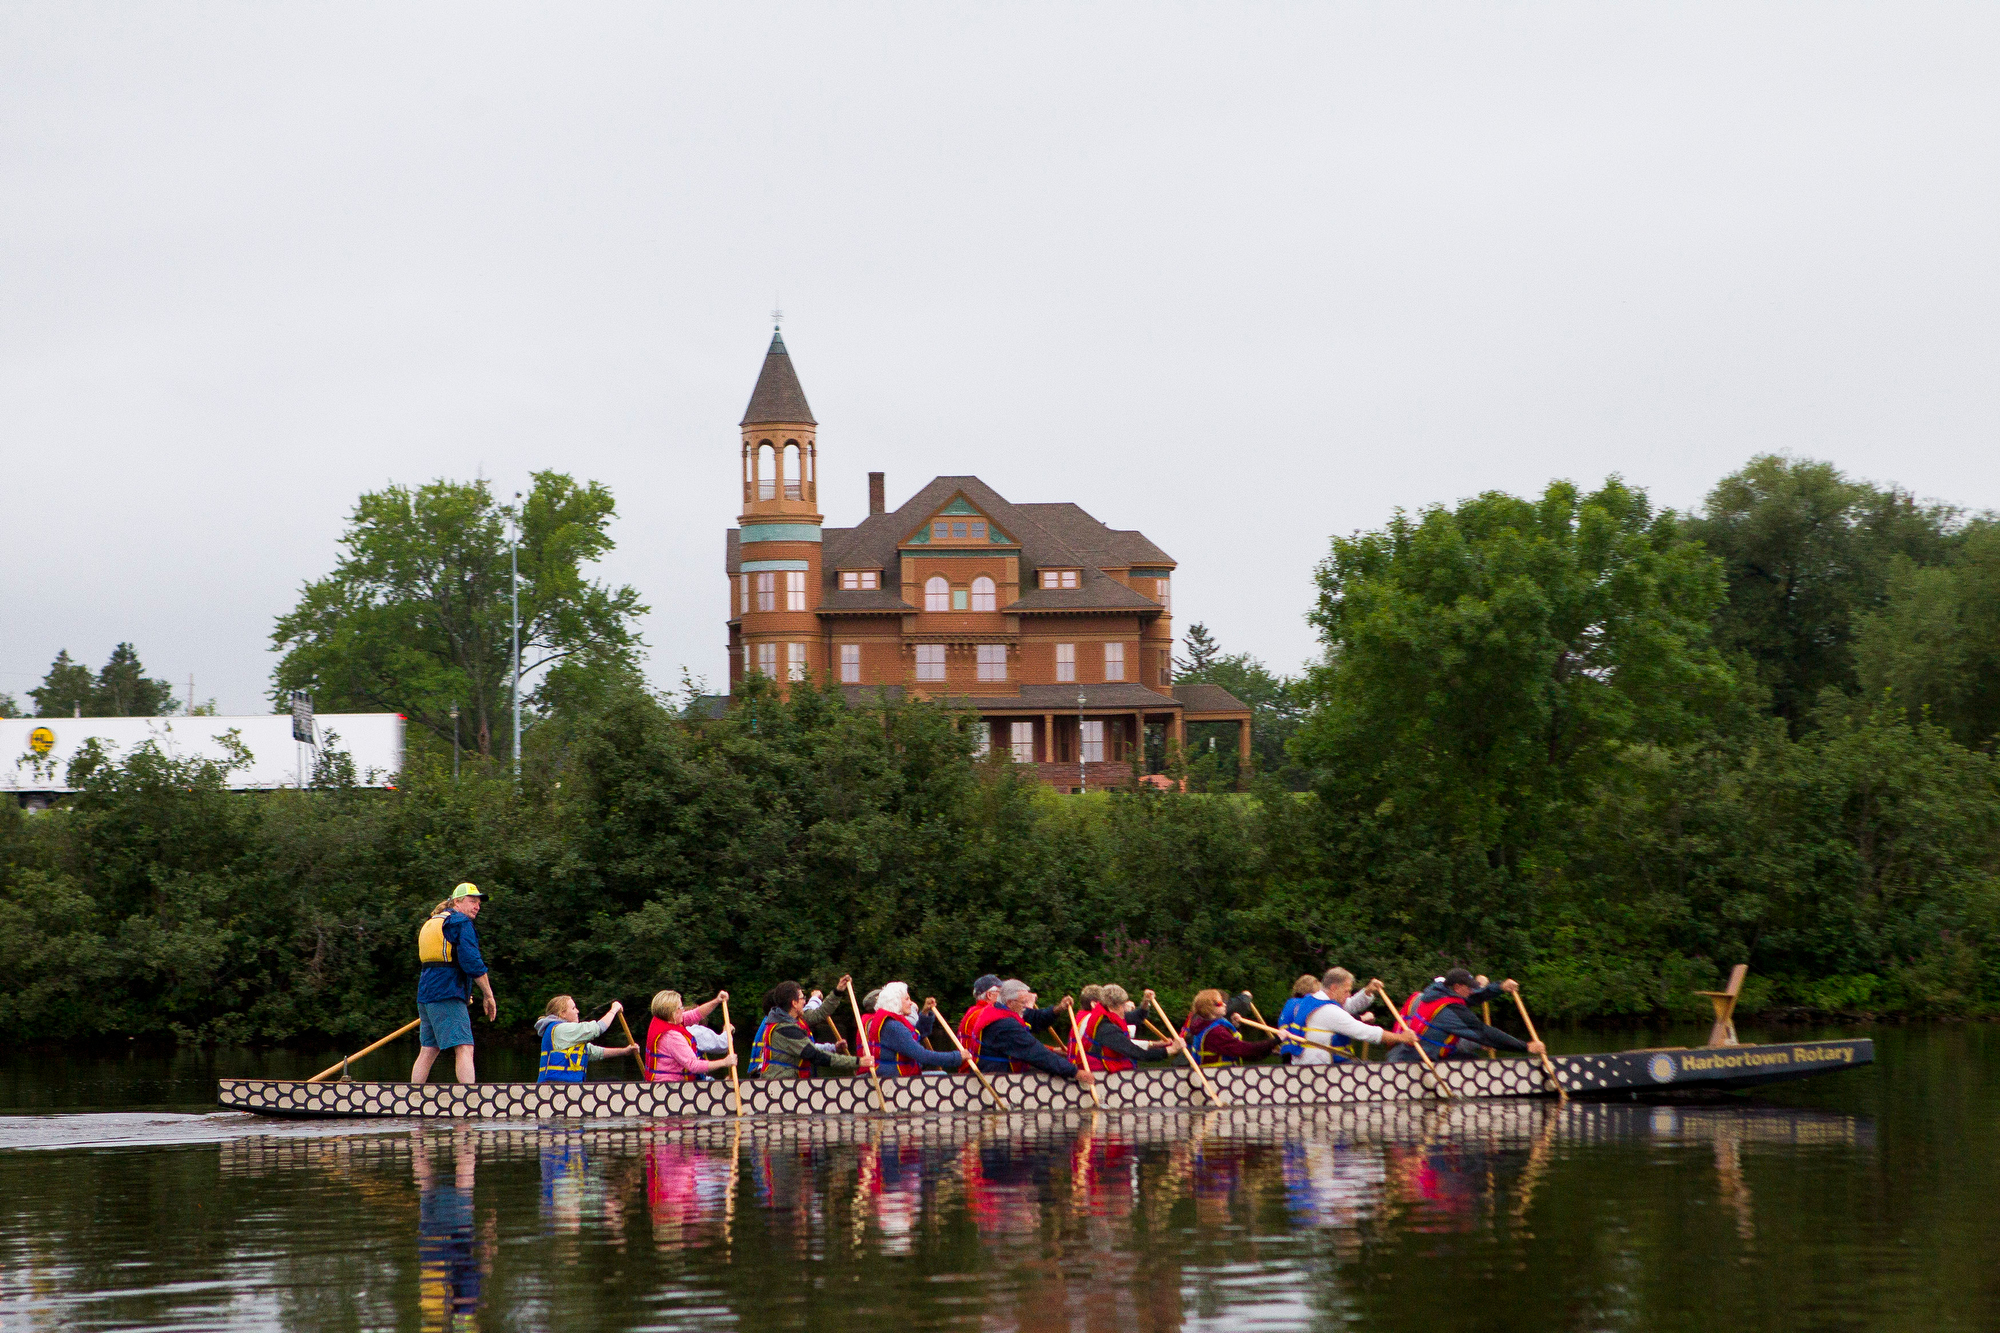 dragon boat paddling in front of Fairlawn Mansion